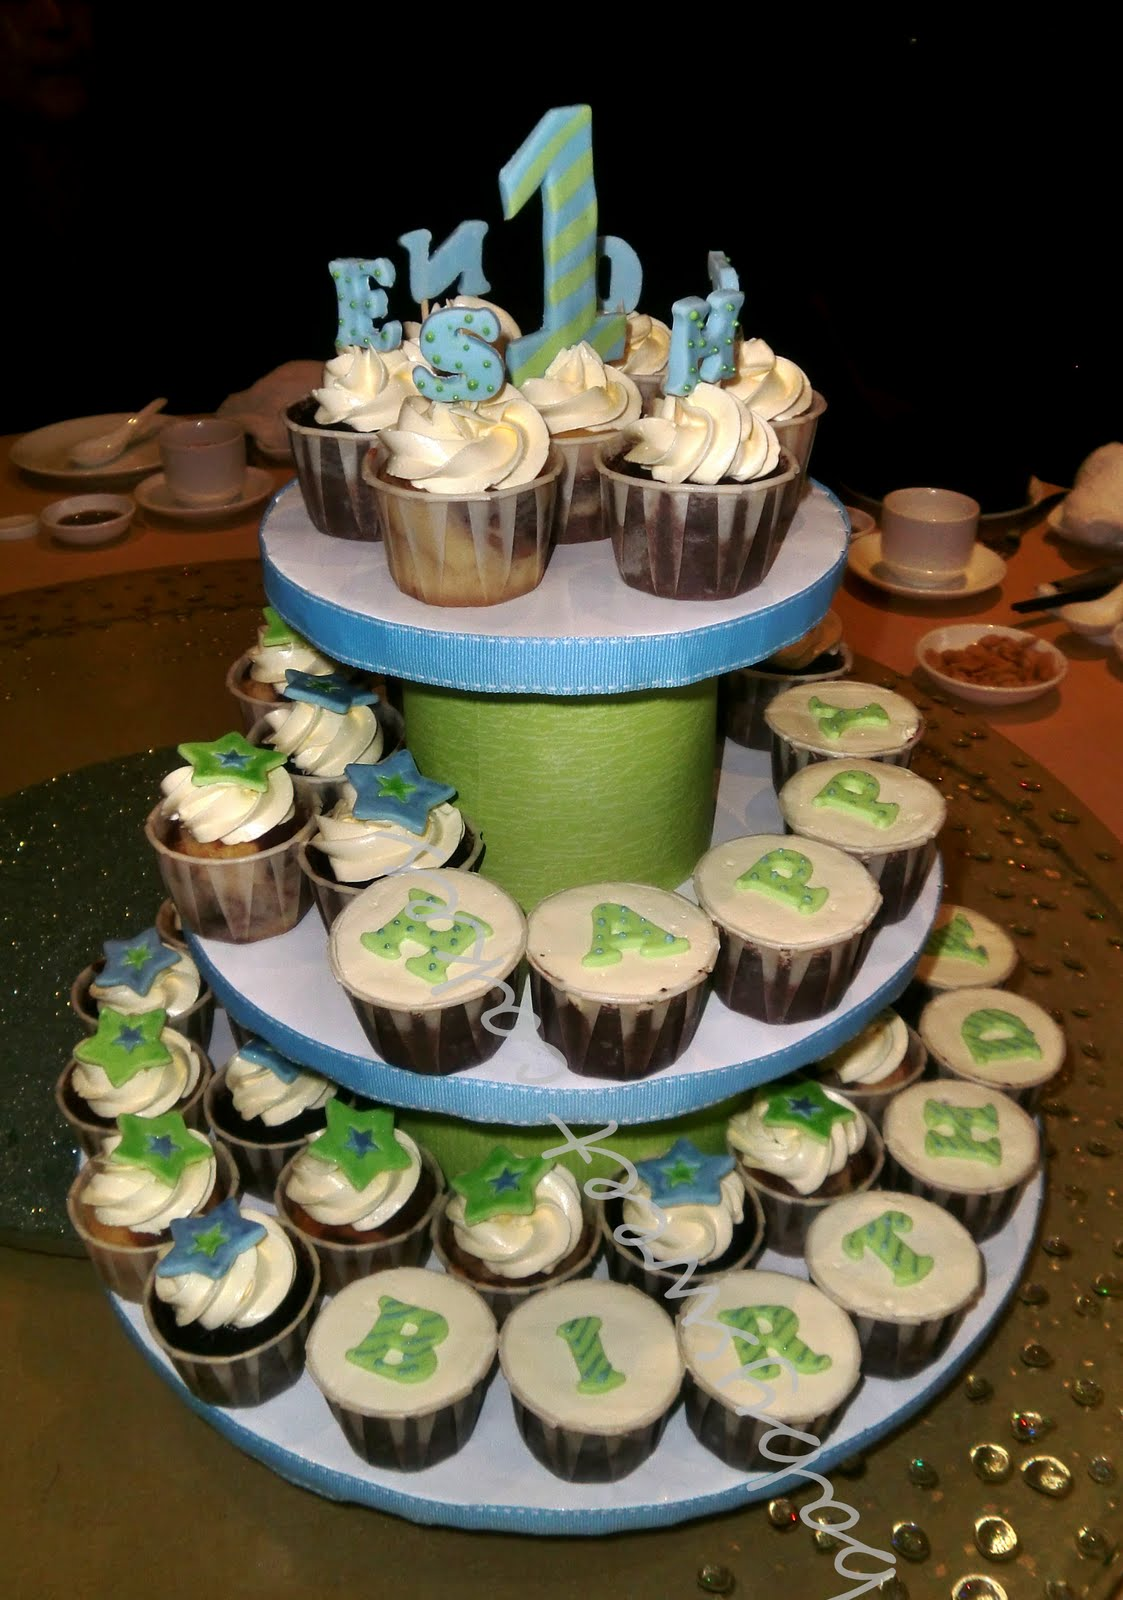 9 Cupcake Cakes For 1 Year Old Boys Photo 1 Year Old Boy Birthday